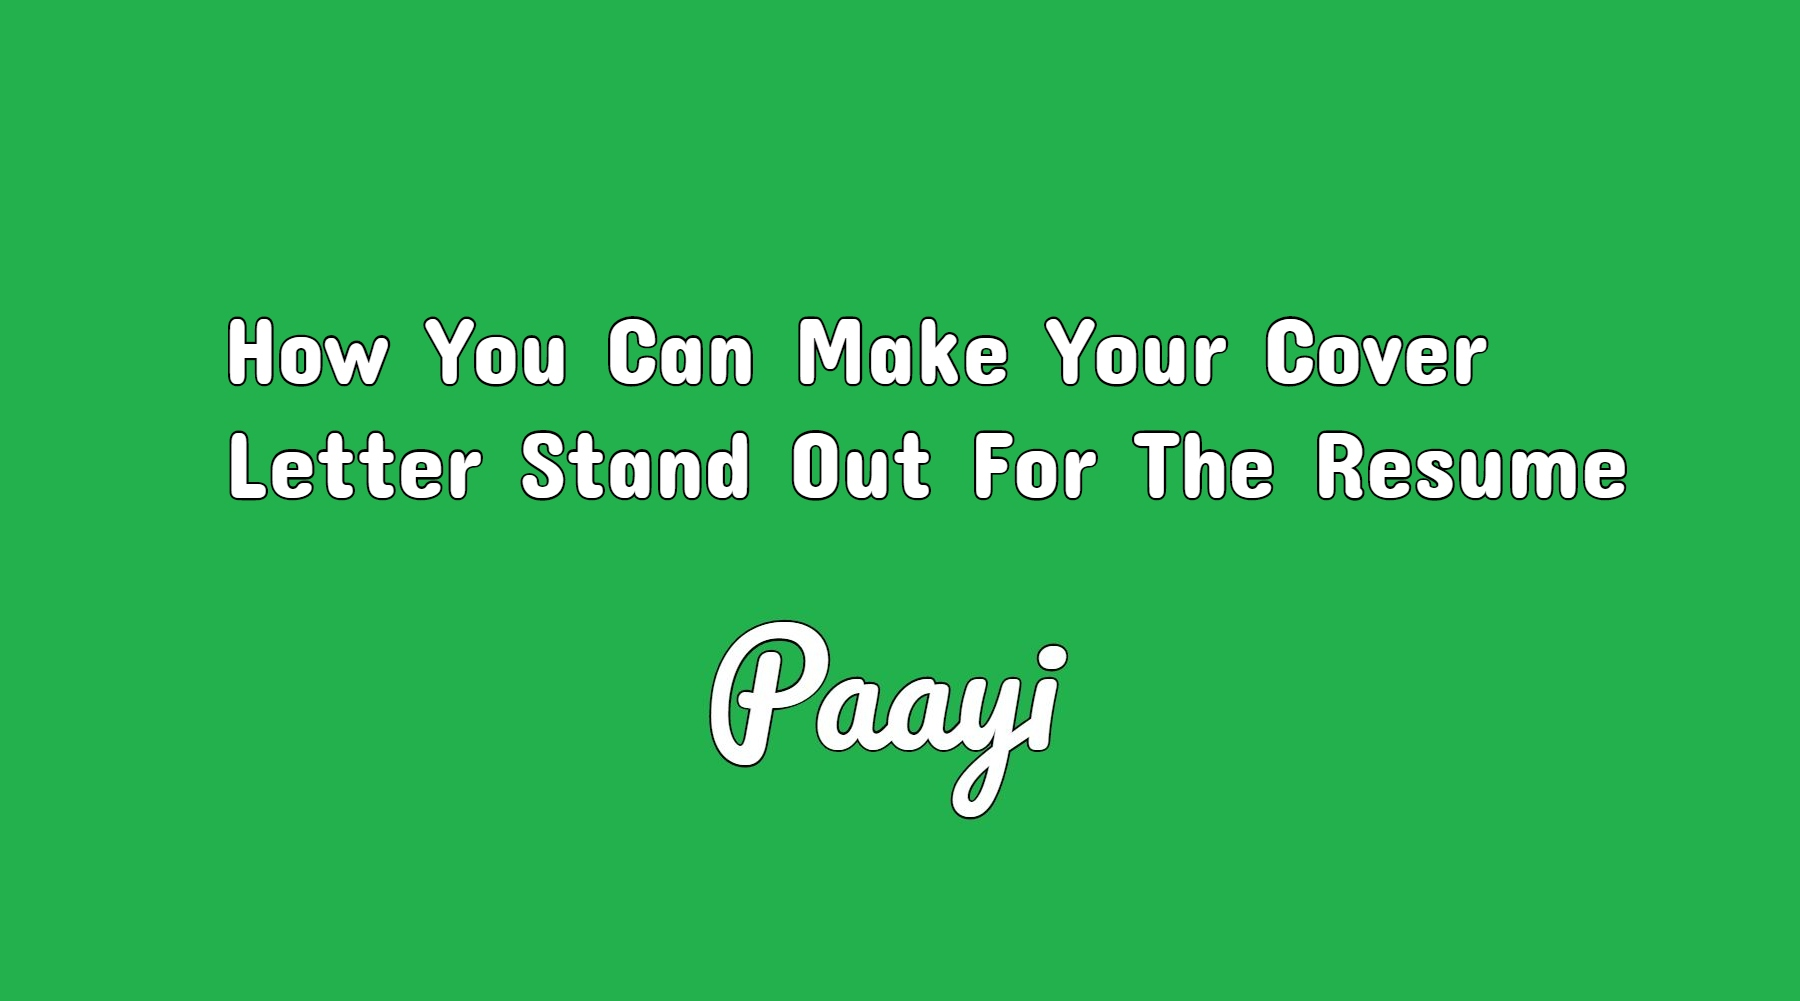 How You Can Make Your Cover Letter Stand Out For The Resume Paayi